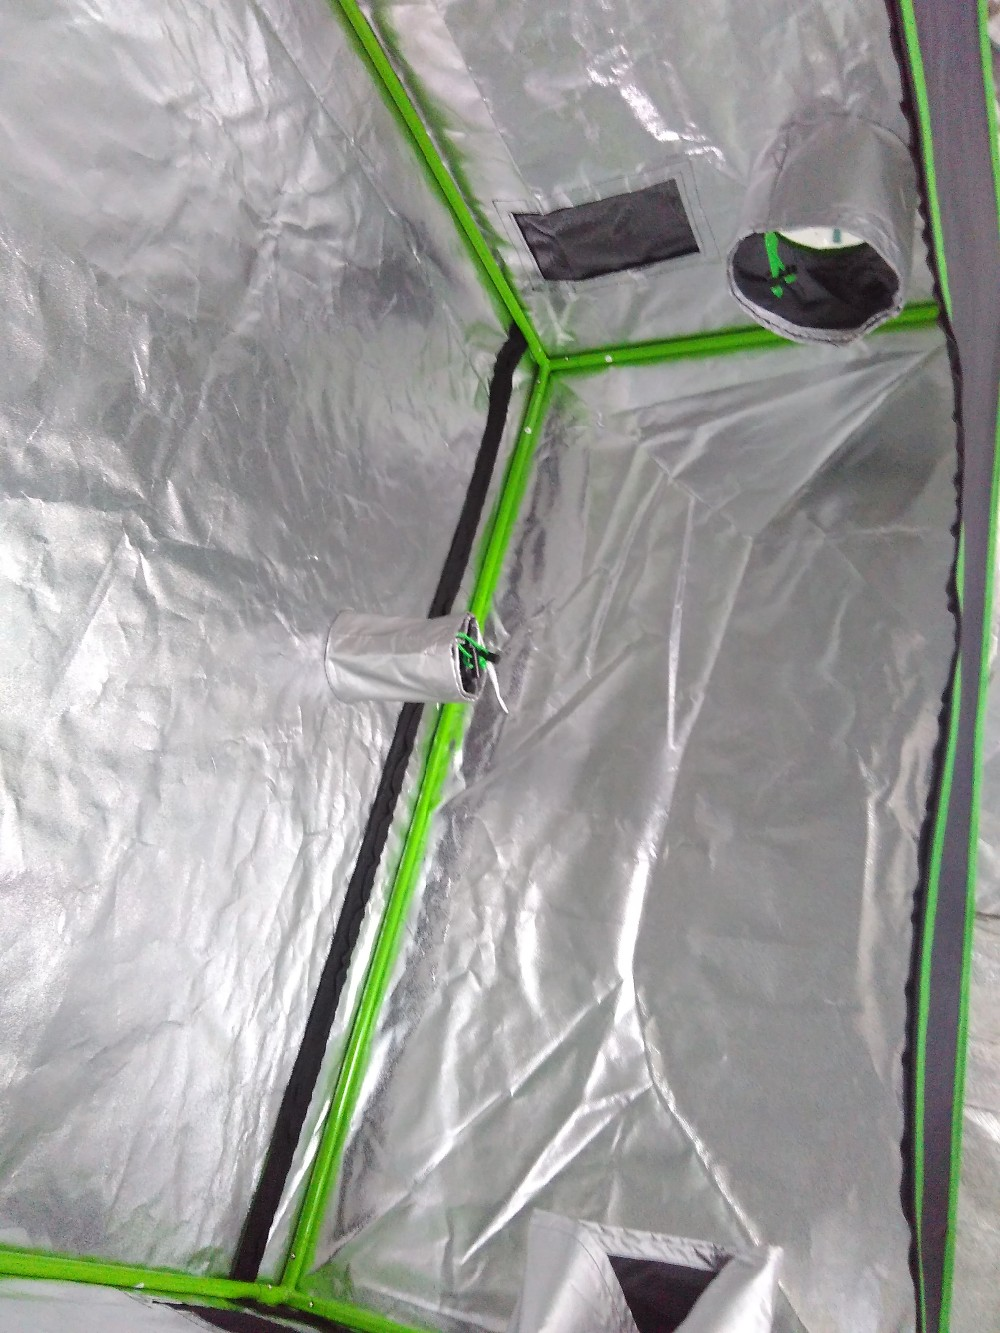 Hydroponic growing tent